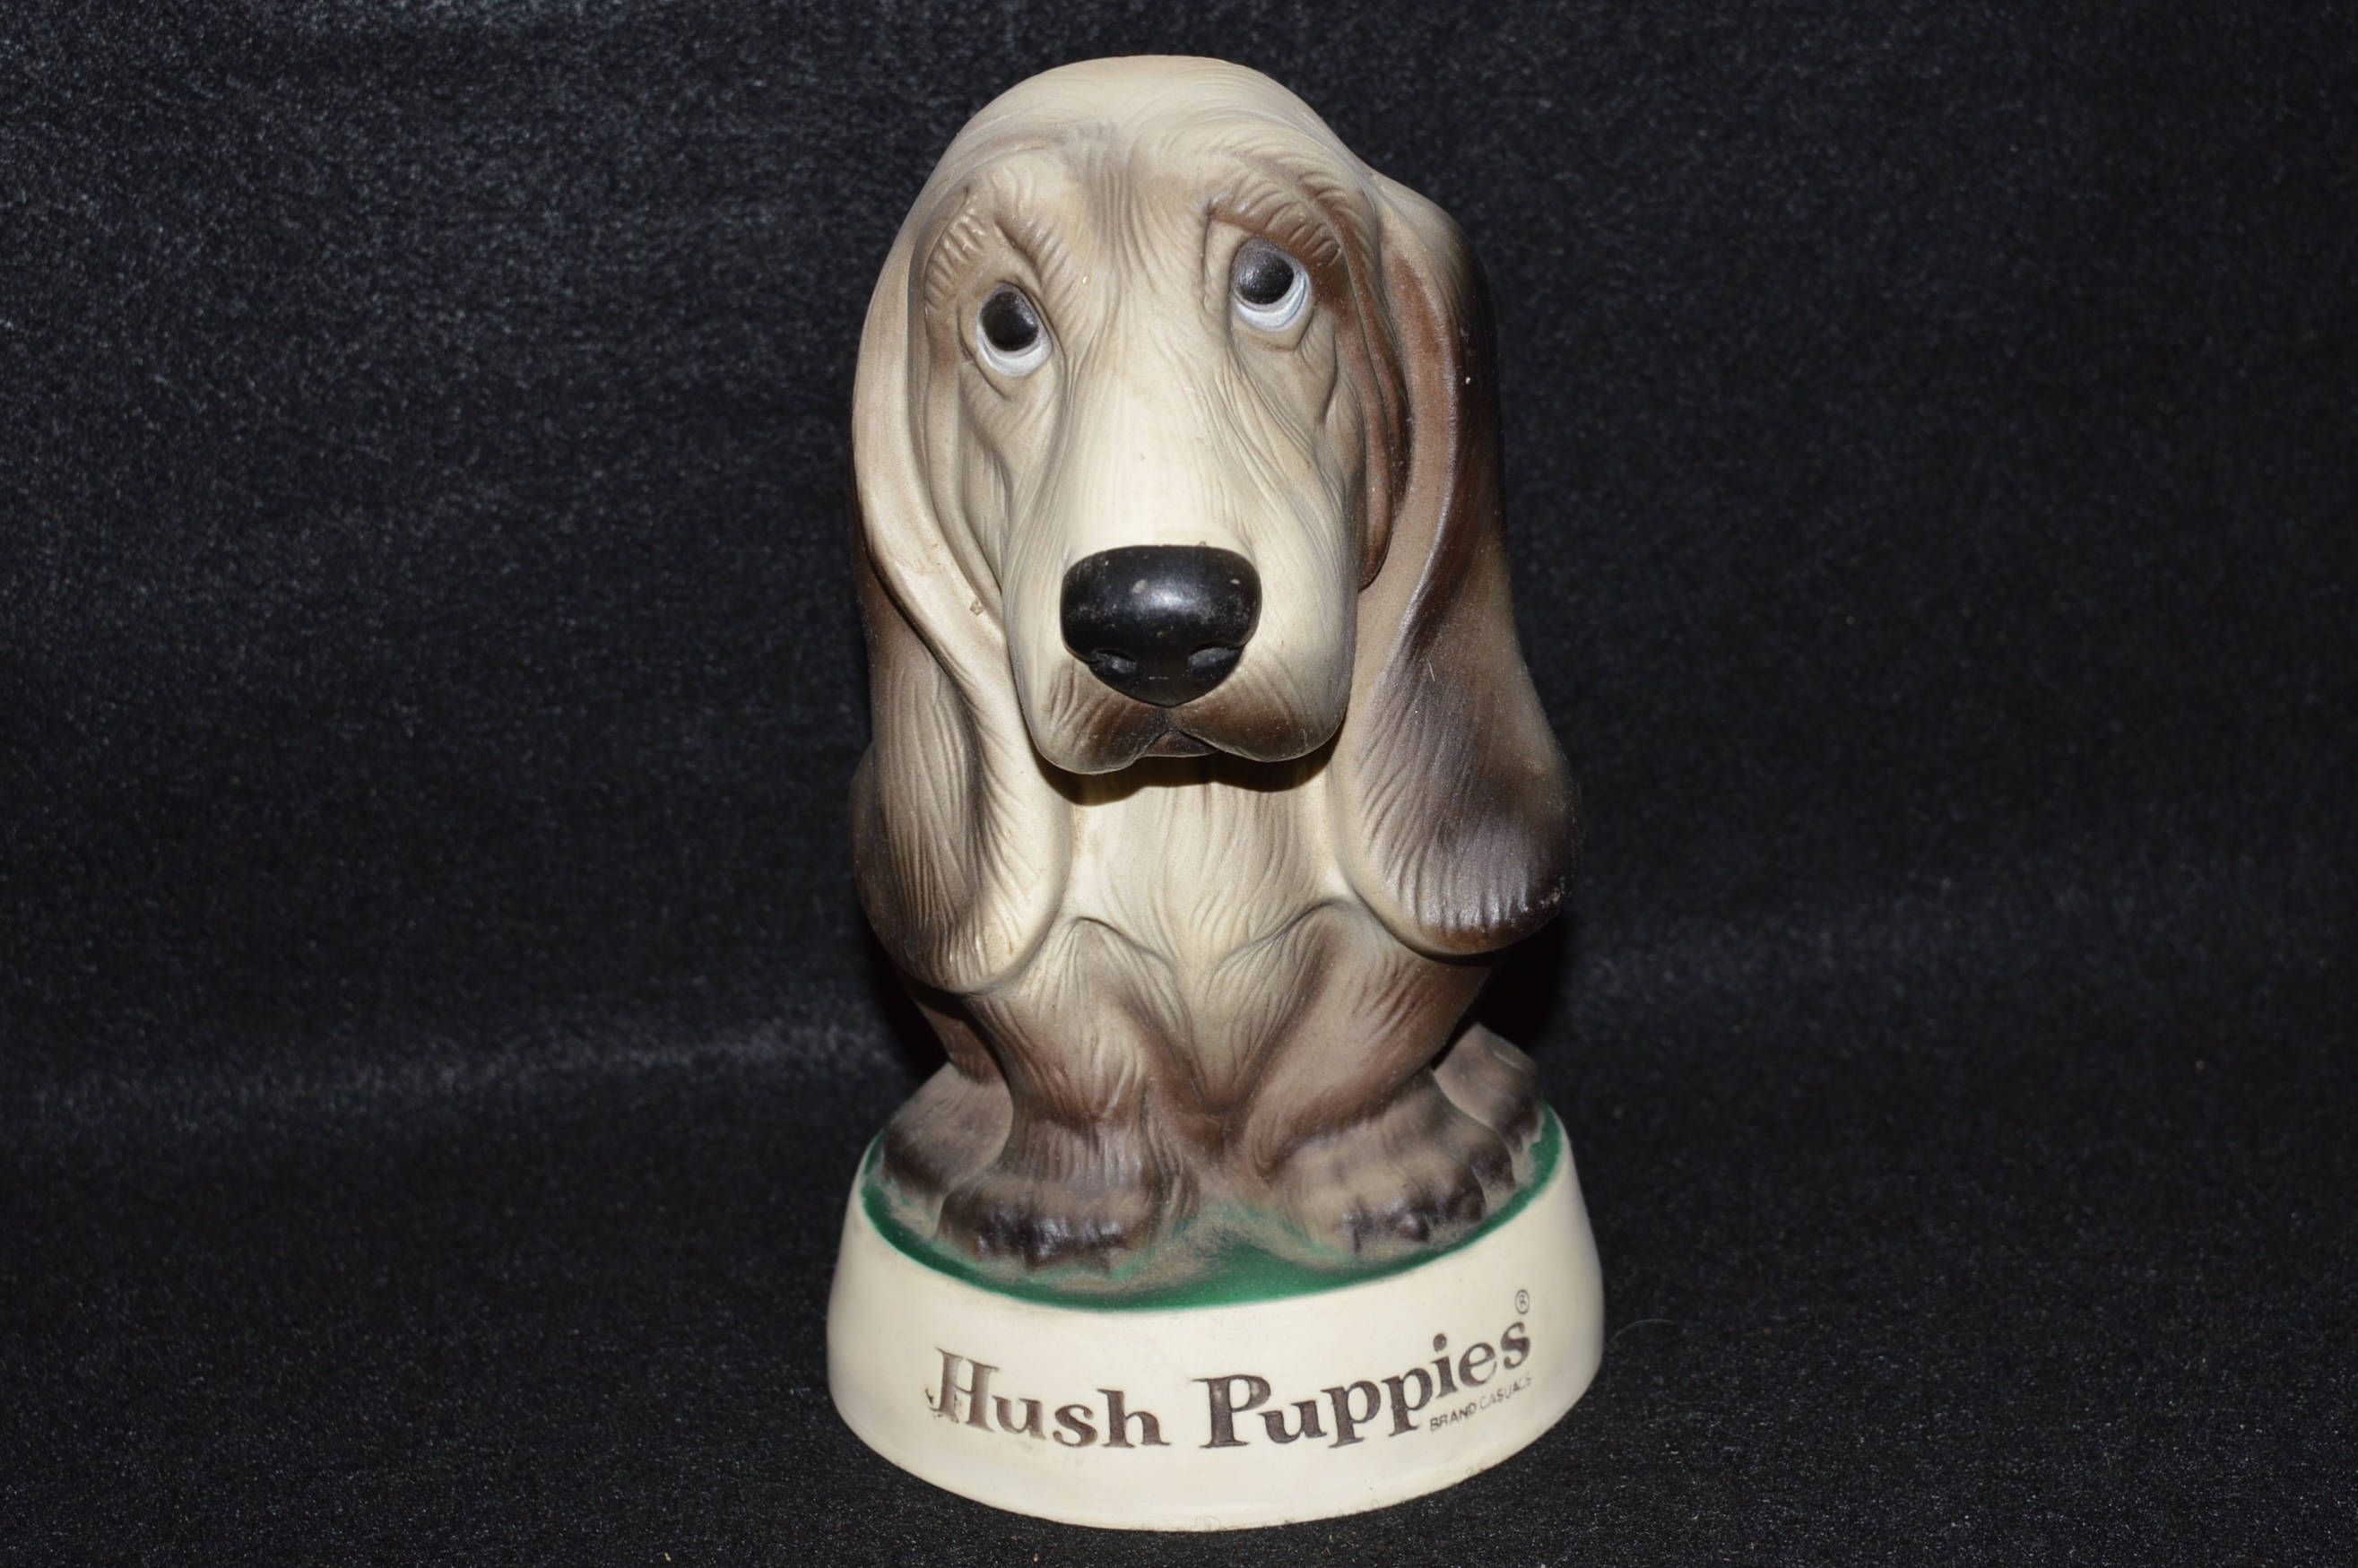 Vintage Hush Puppies Hound Dog Bank Hush Puppies Shoes Hound Dog Hush Puppies Puppies